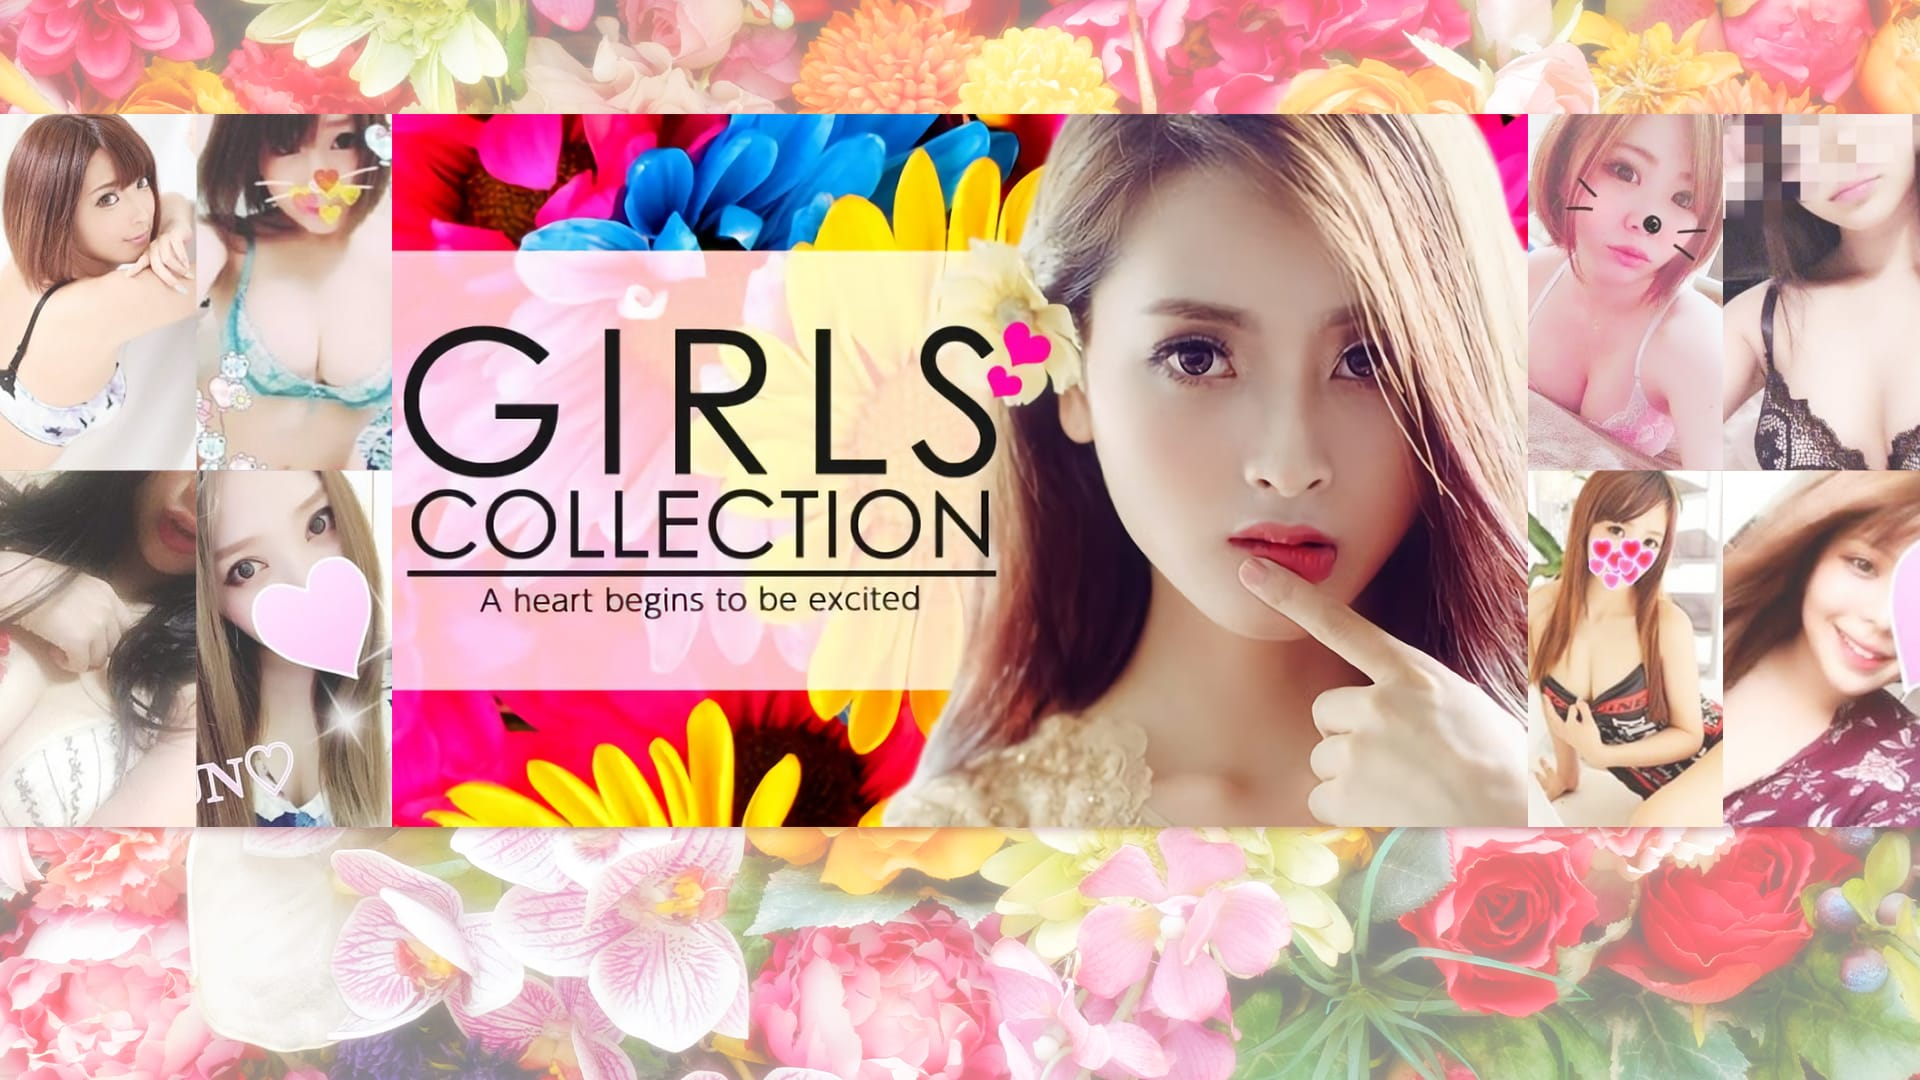 GIRLS COLLECTION